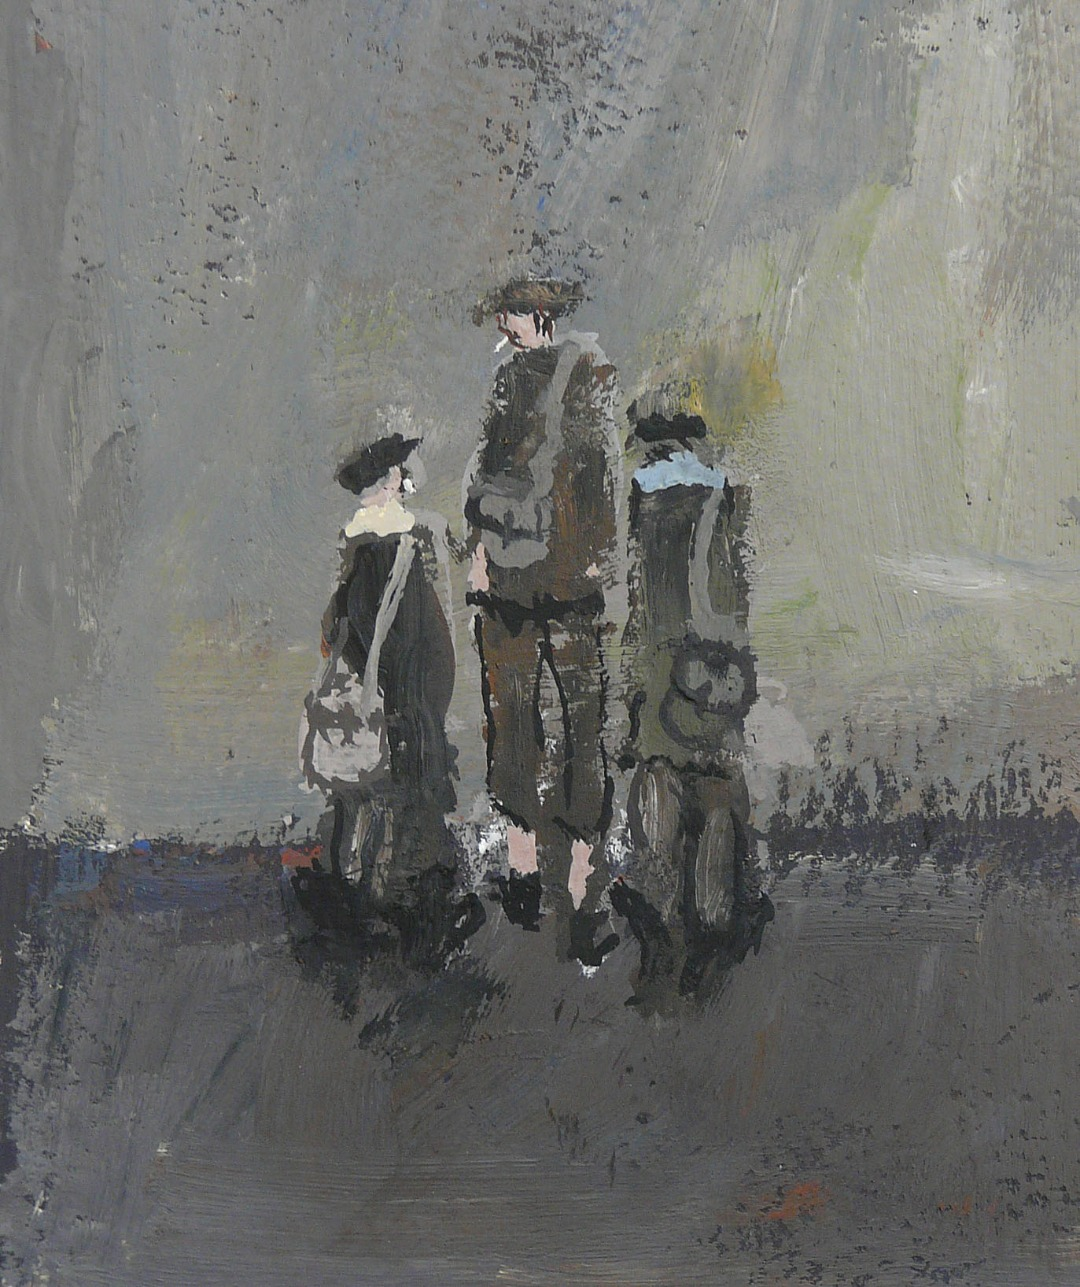 Lanky Lawson by Malcolm Teasdale